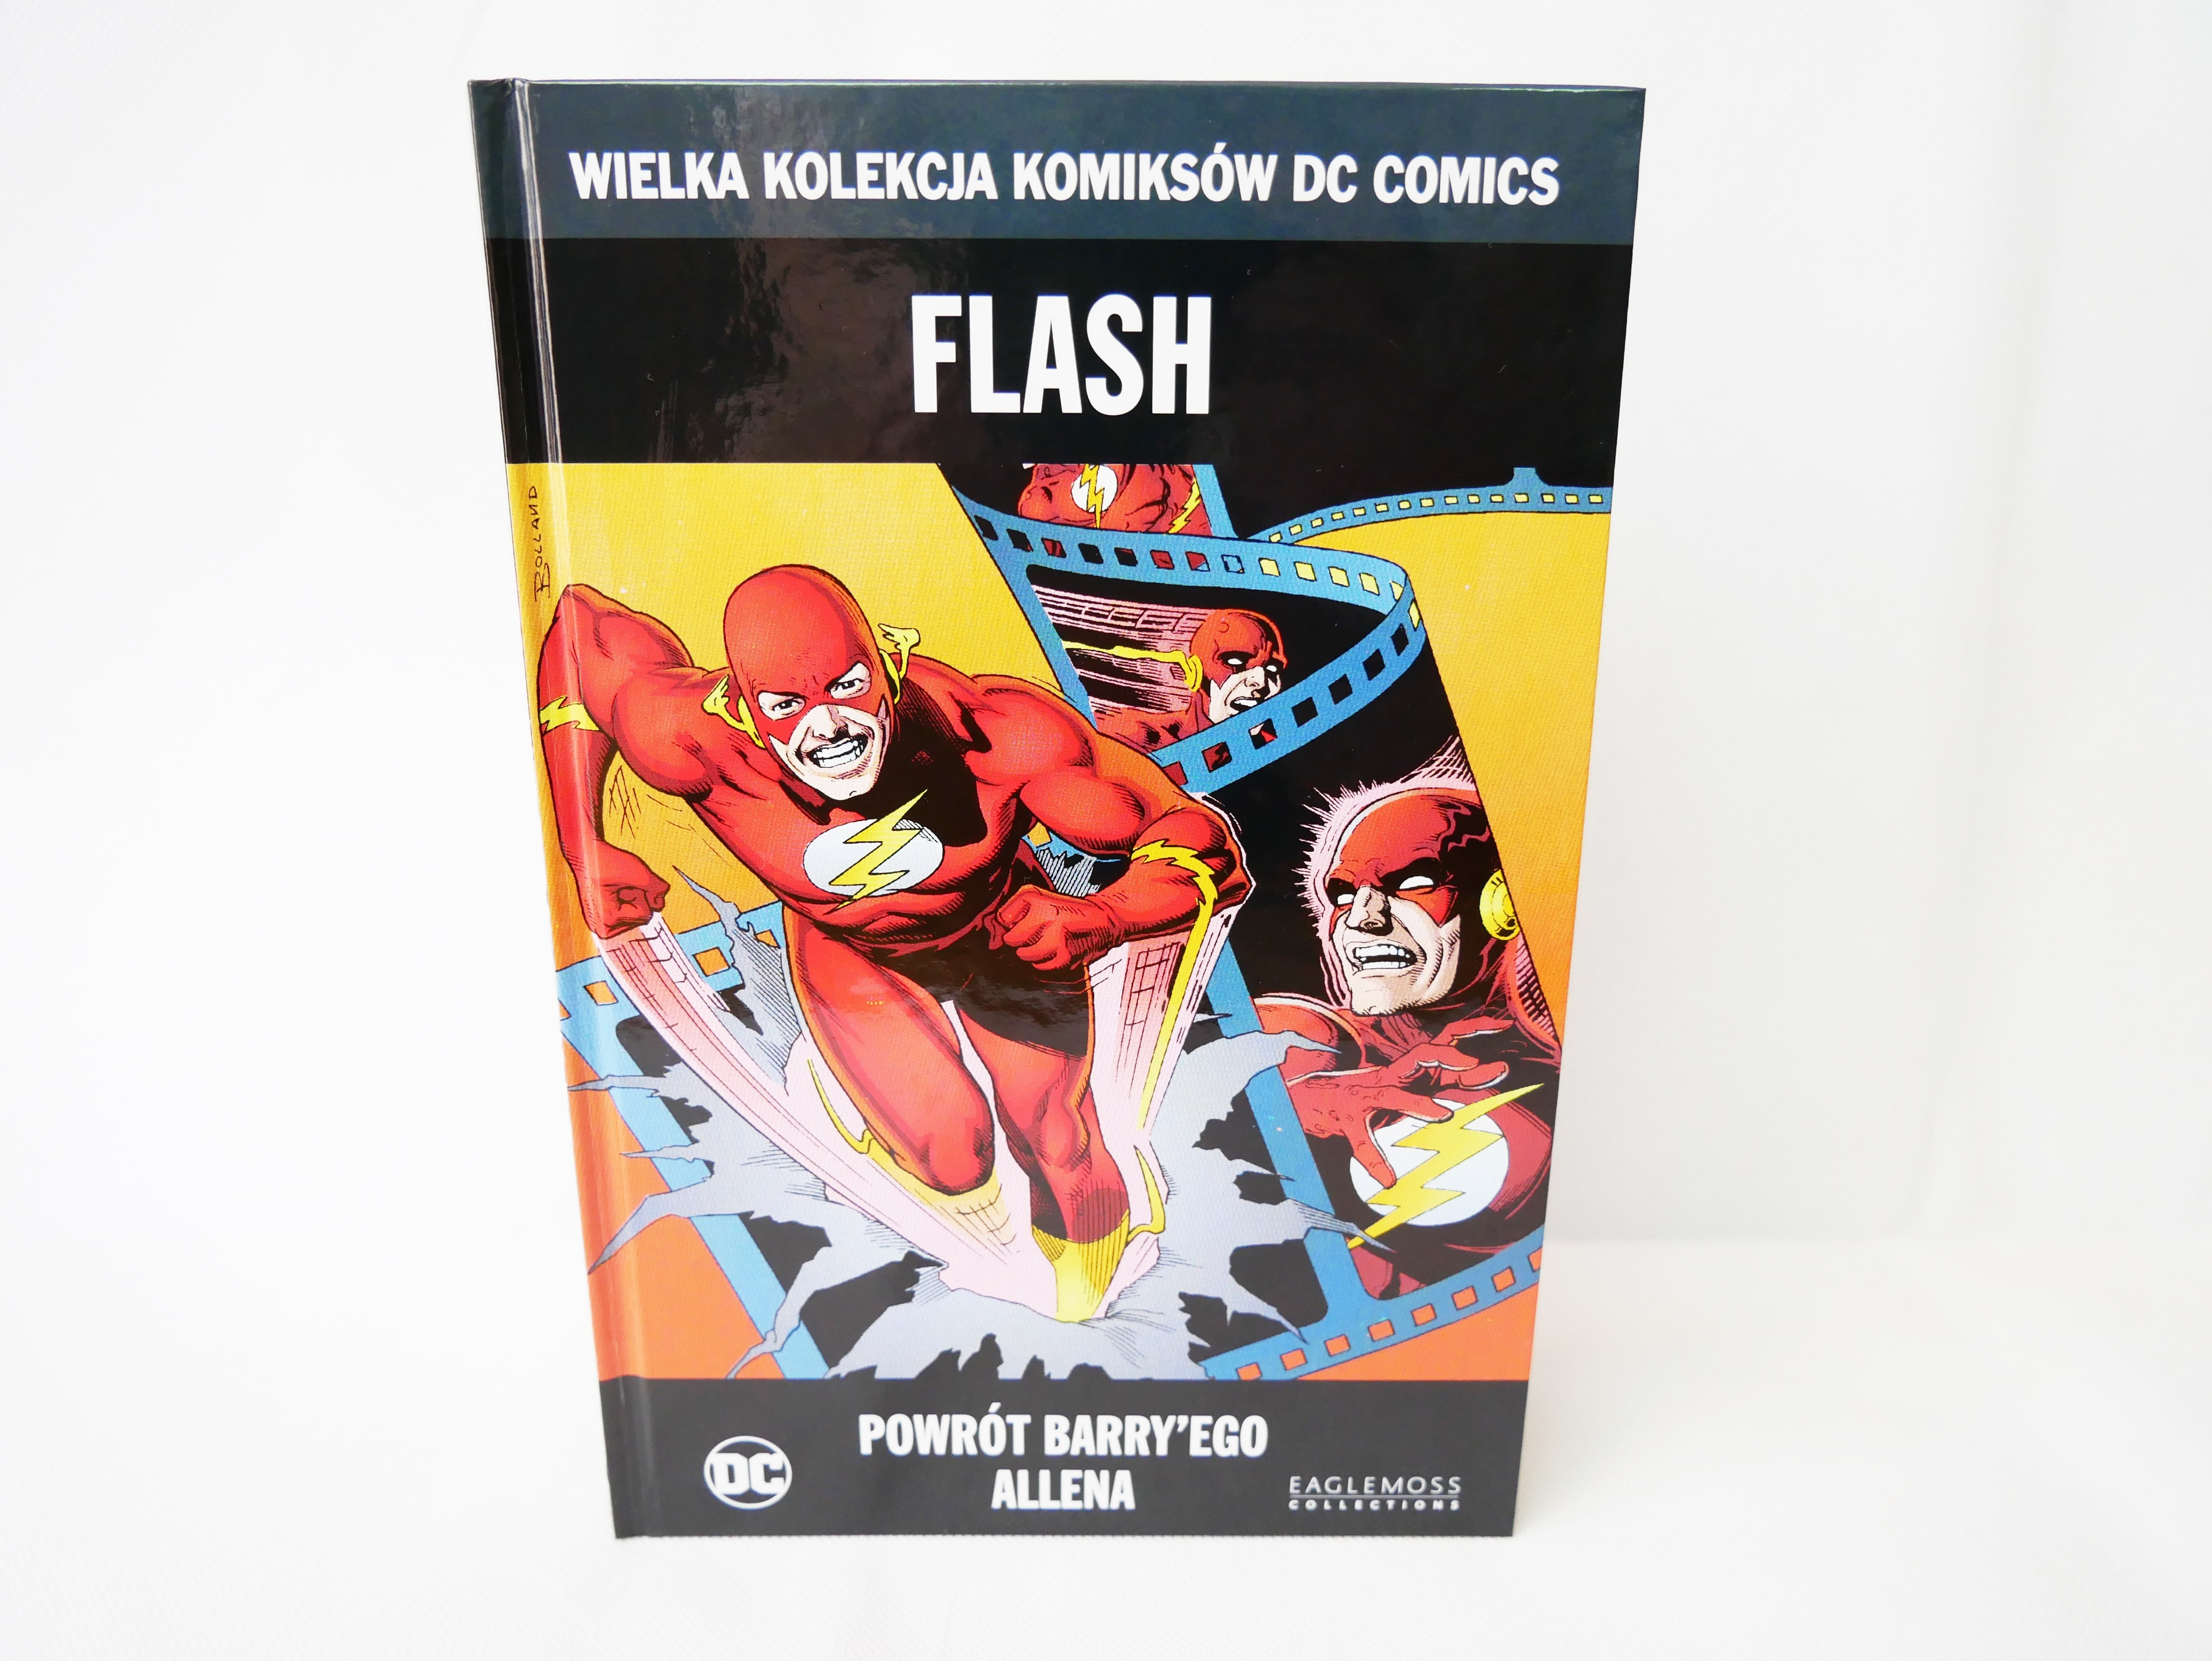 WKKDCC#47: Flash: Powrót Barry'ego Allena